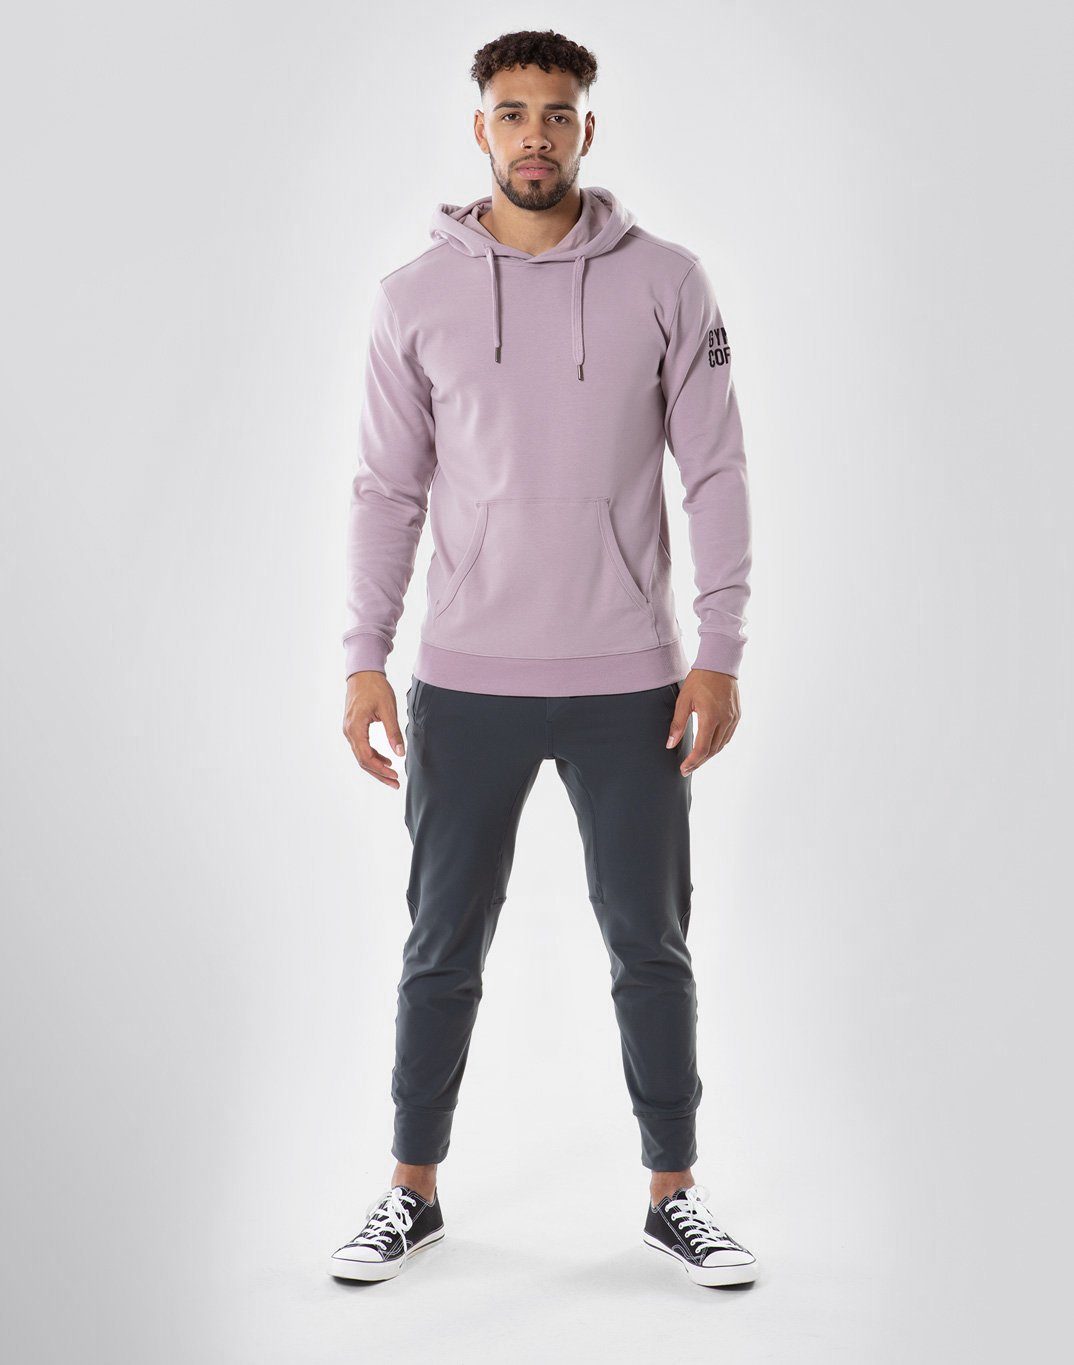 Gym Plus Coffee Hoodie Pullover Hoodie in Mauve Designed in Ireland